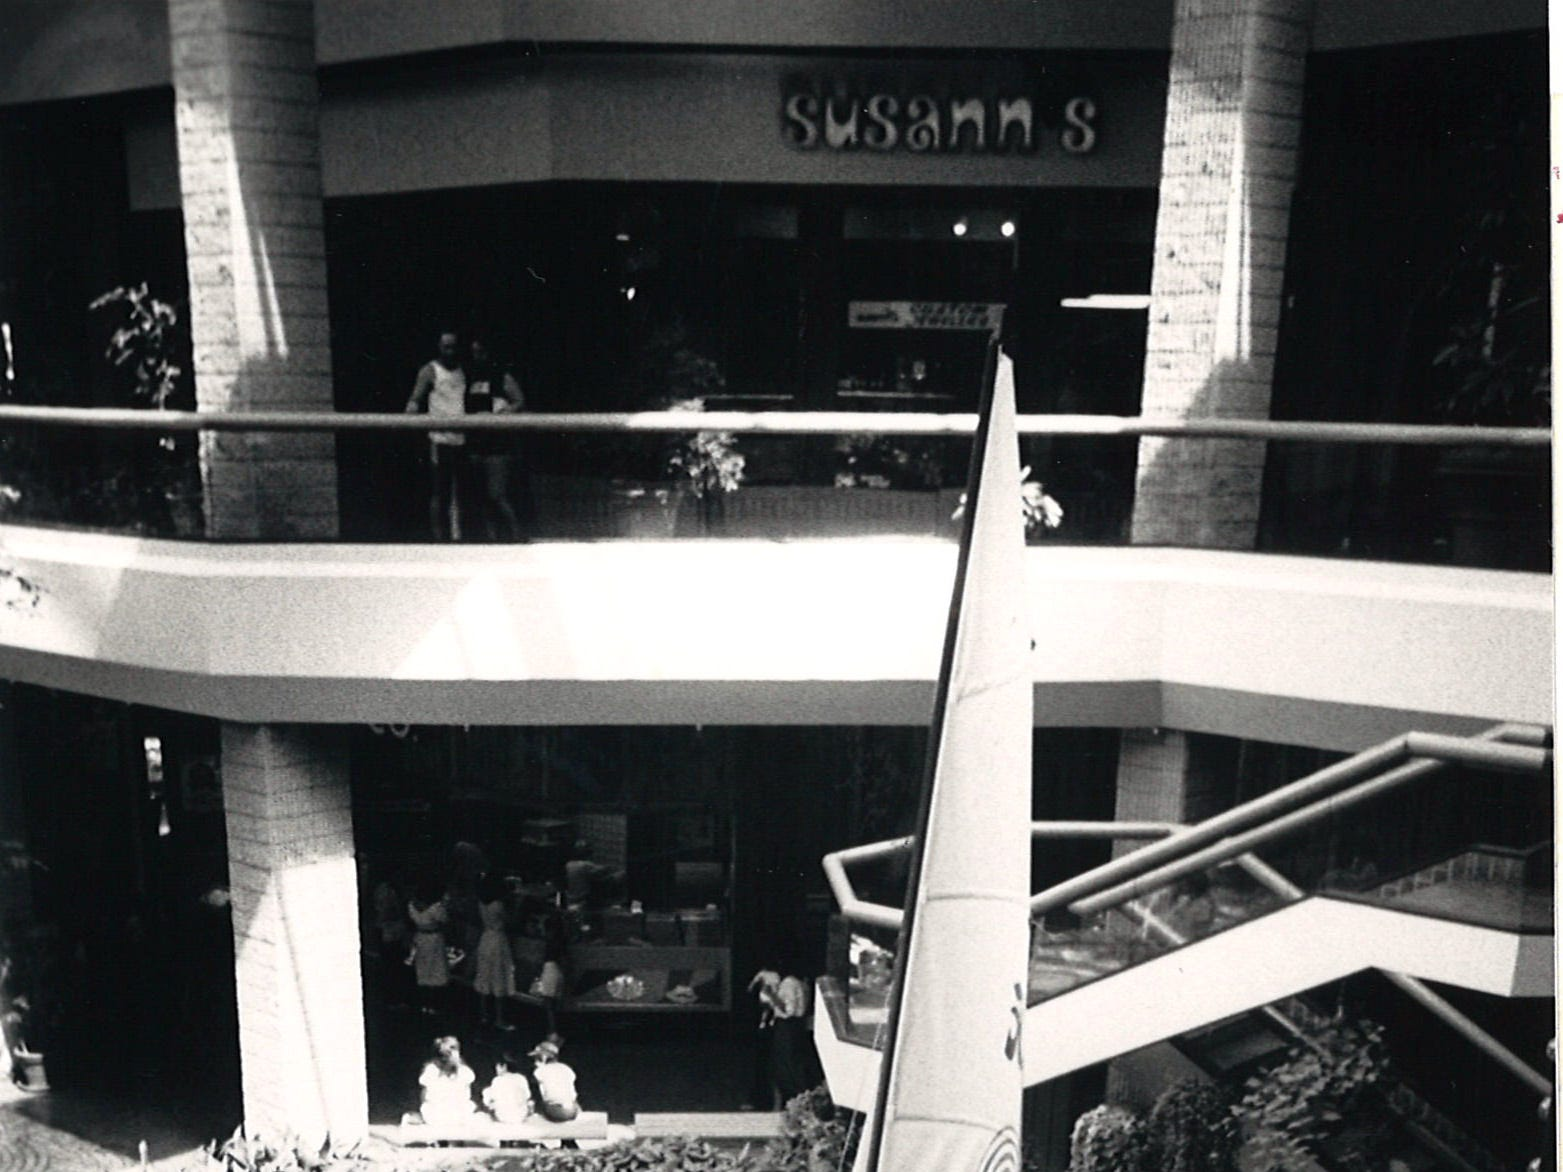 A catamaran sits in the fountain in Sunrise Mall's atrium as part of the exhibits for the SUmmer Fun and Fitness expo at the mall June 15, 1984.